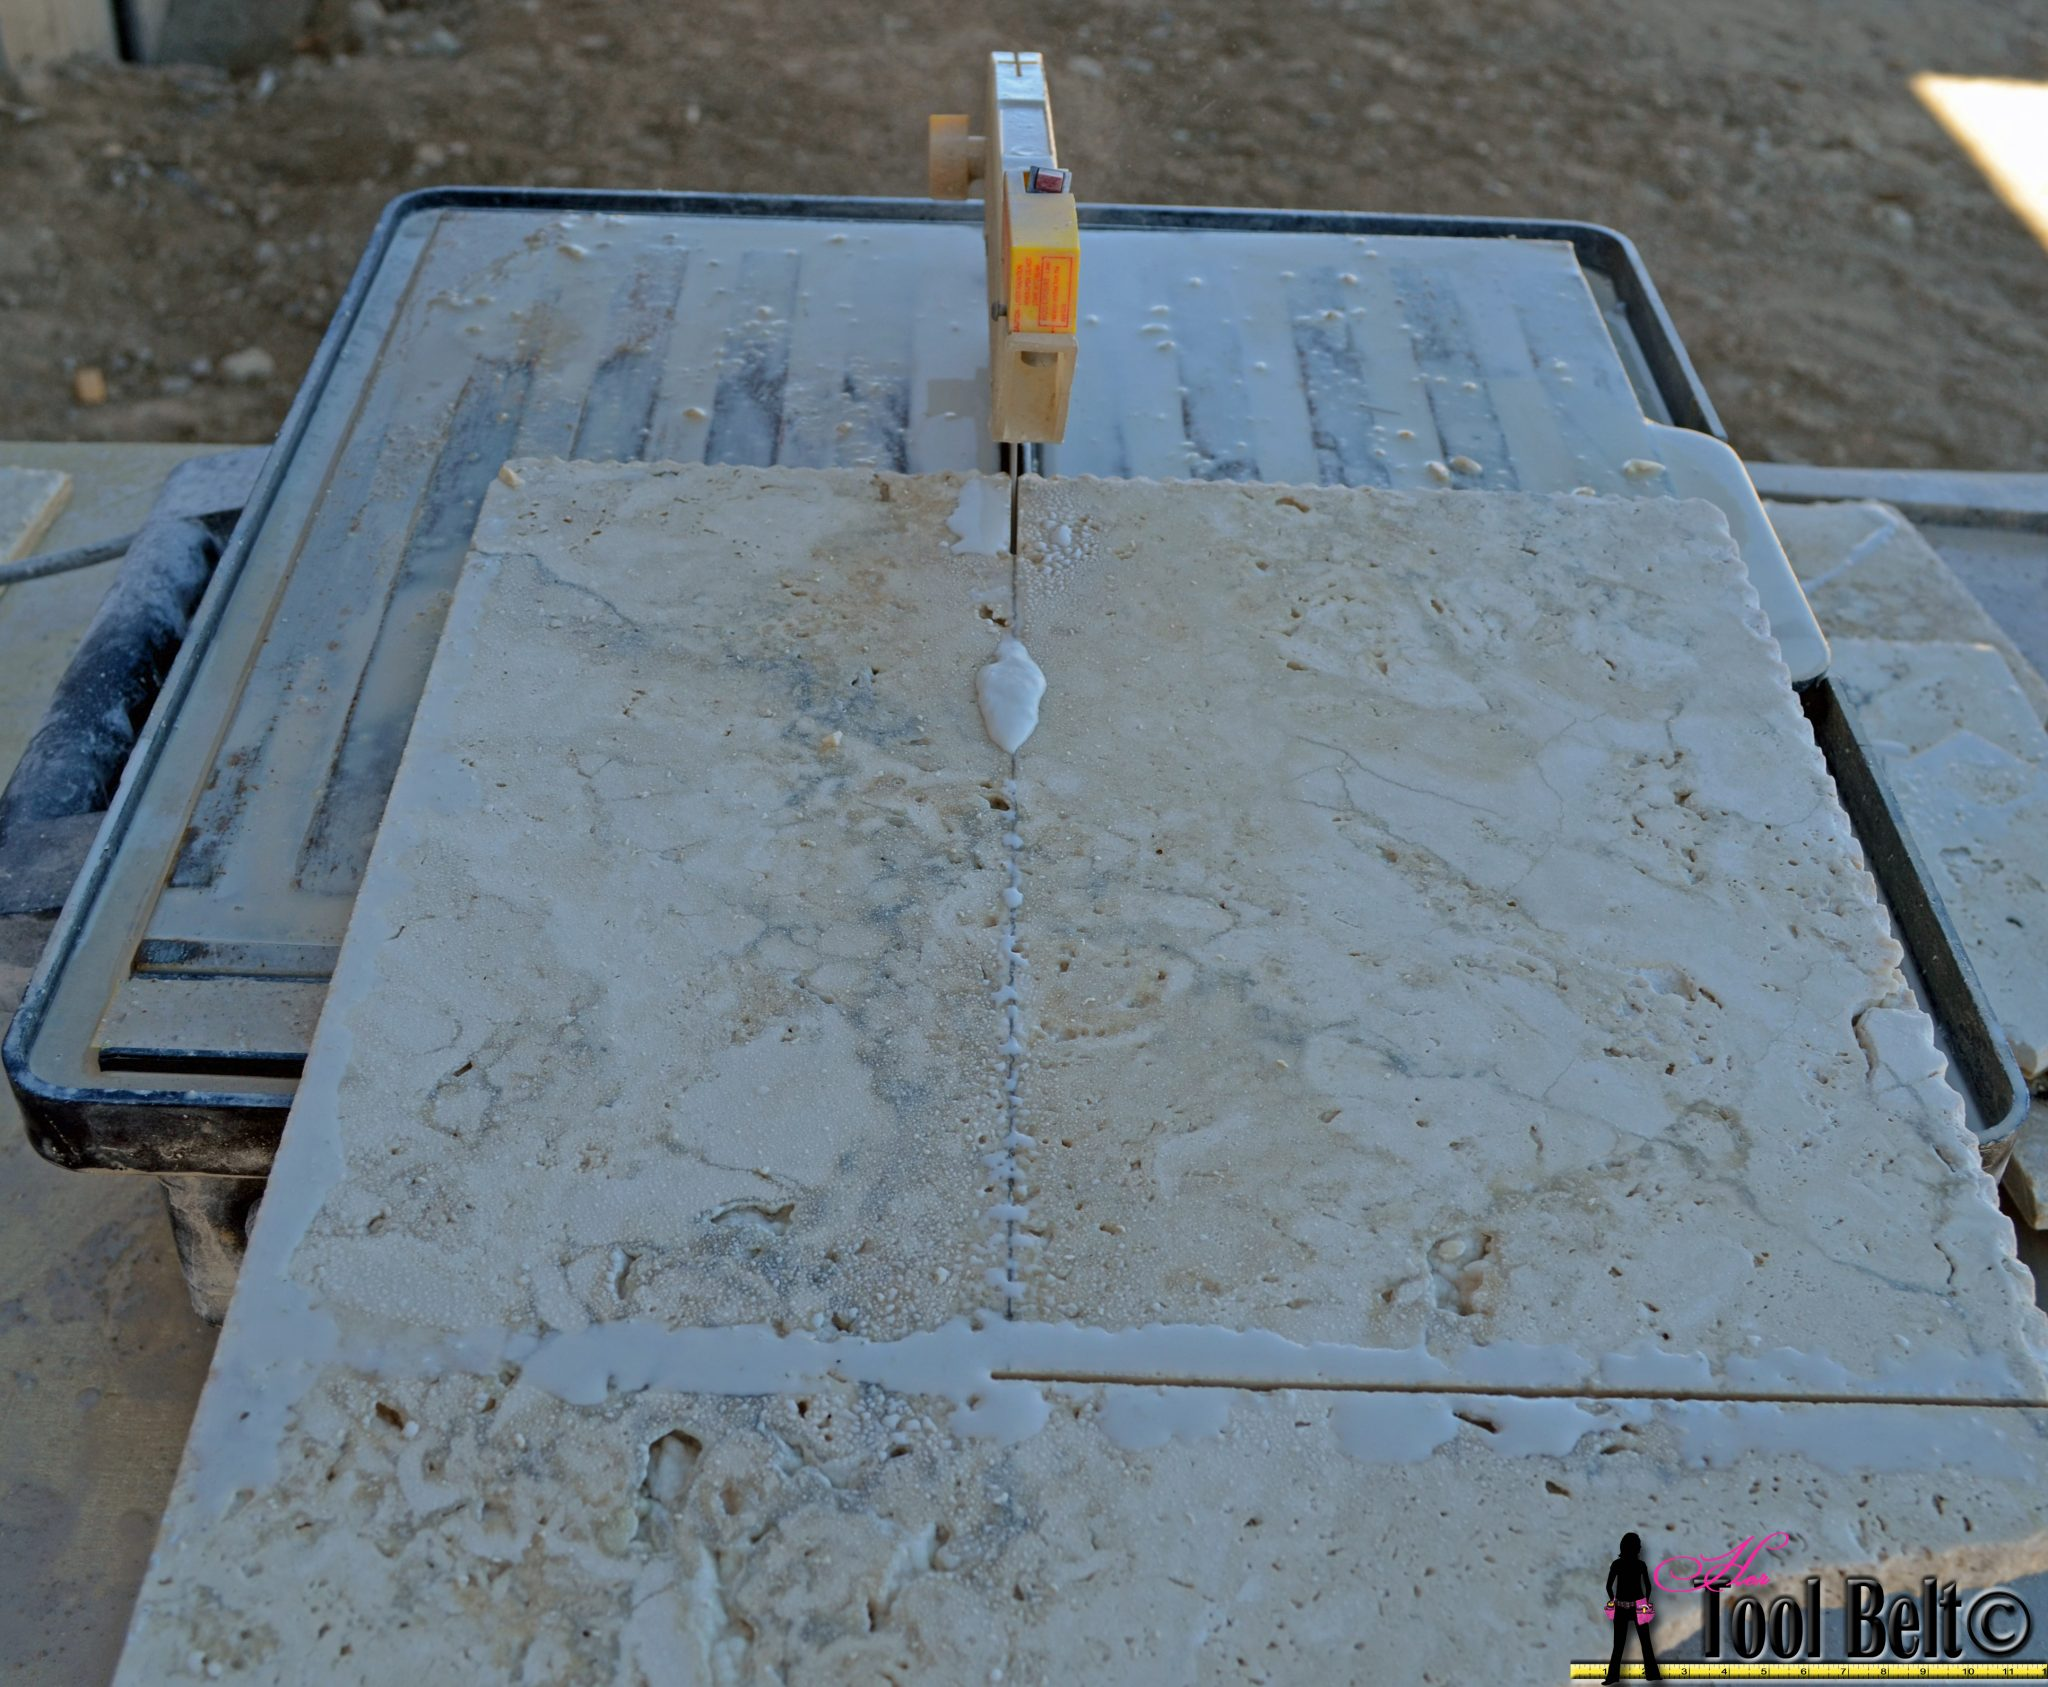 Travertine versailles pattern tile tutorial her tool belt always wear safety glasses when cutting tile measure and mark on the tile with pencil where to make your cut gently feed the tile into the tile saw blade greentooth Images